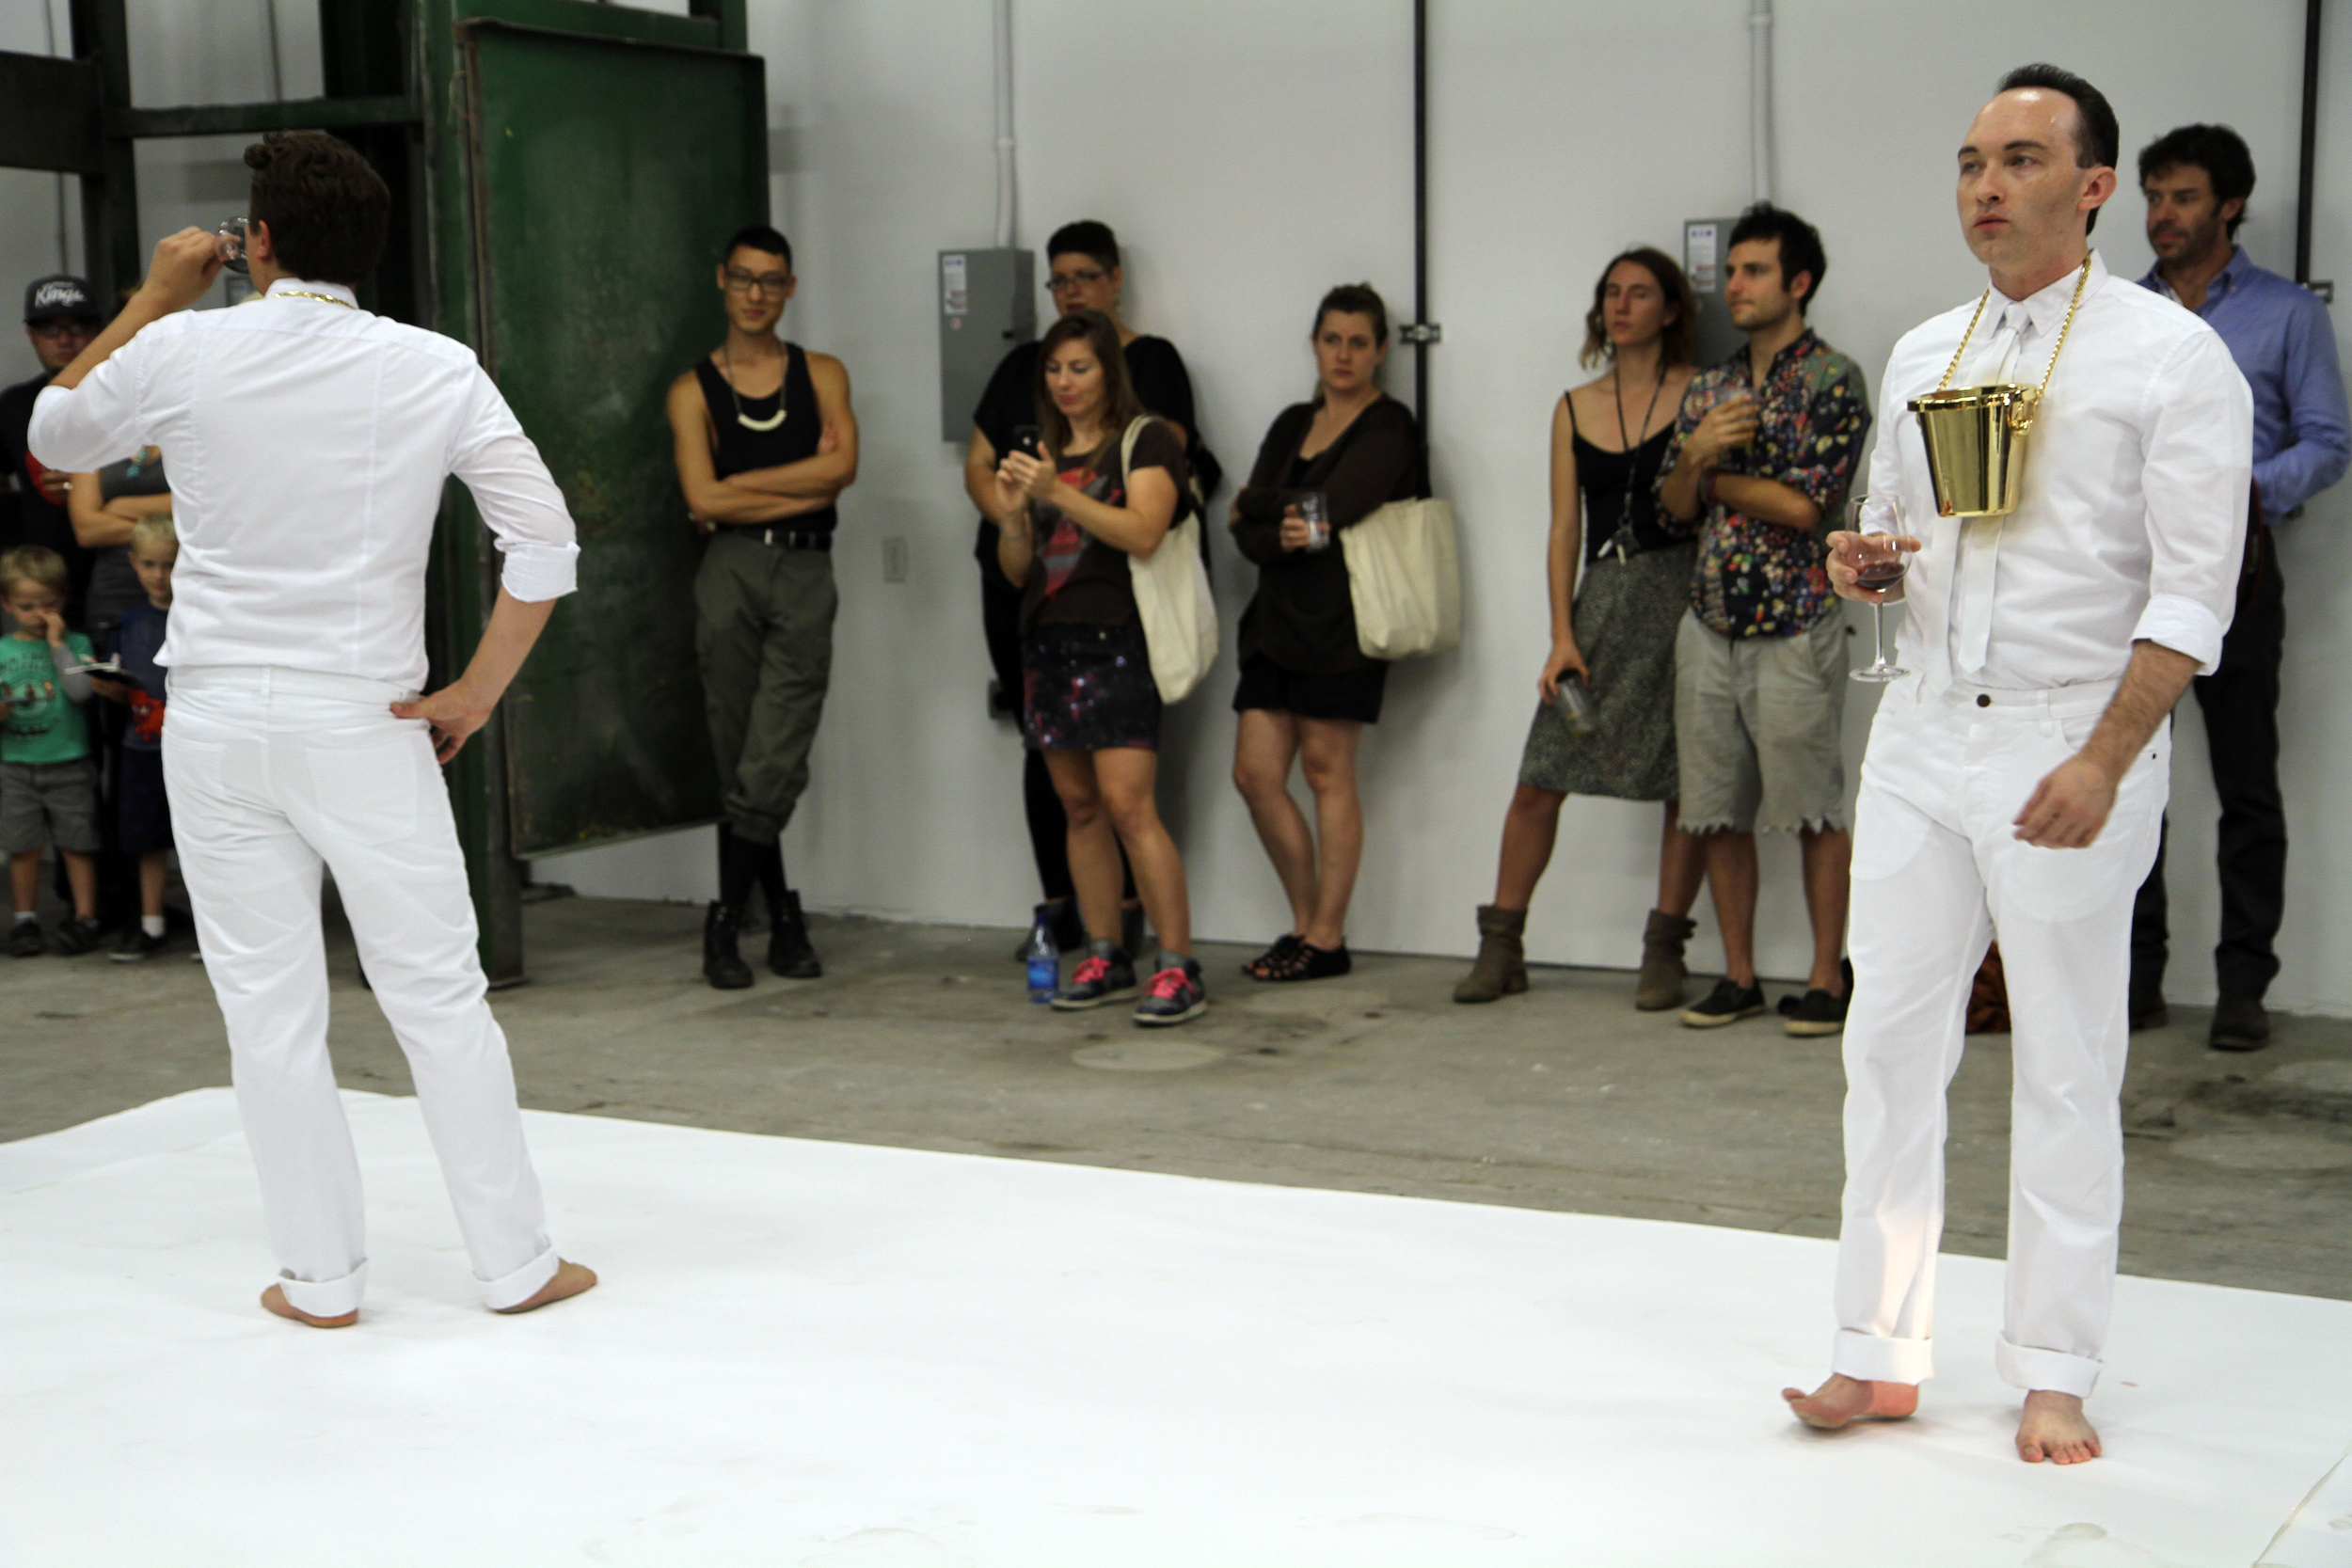 Crachevin  2014 Live performance Dimensions variable 12:00 minutes Video and Photography Courtesy of Tyler Calkin